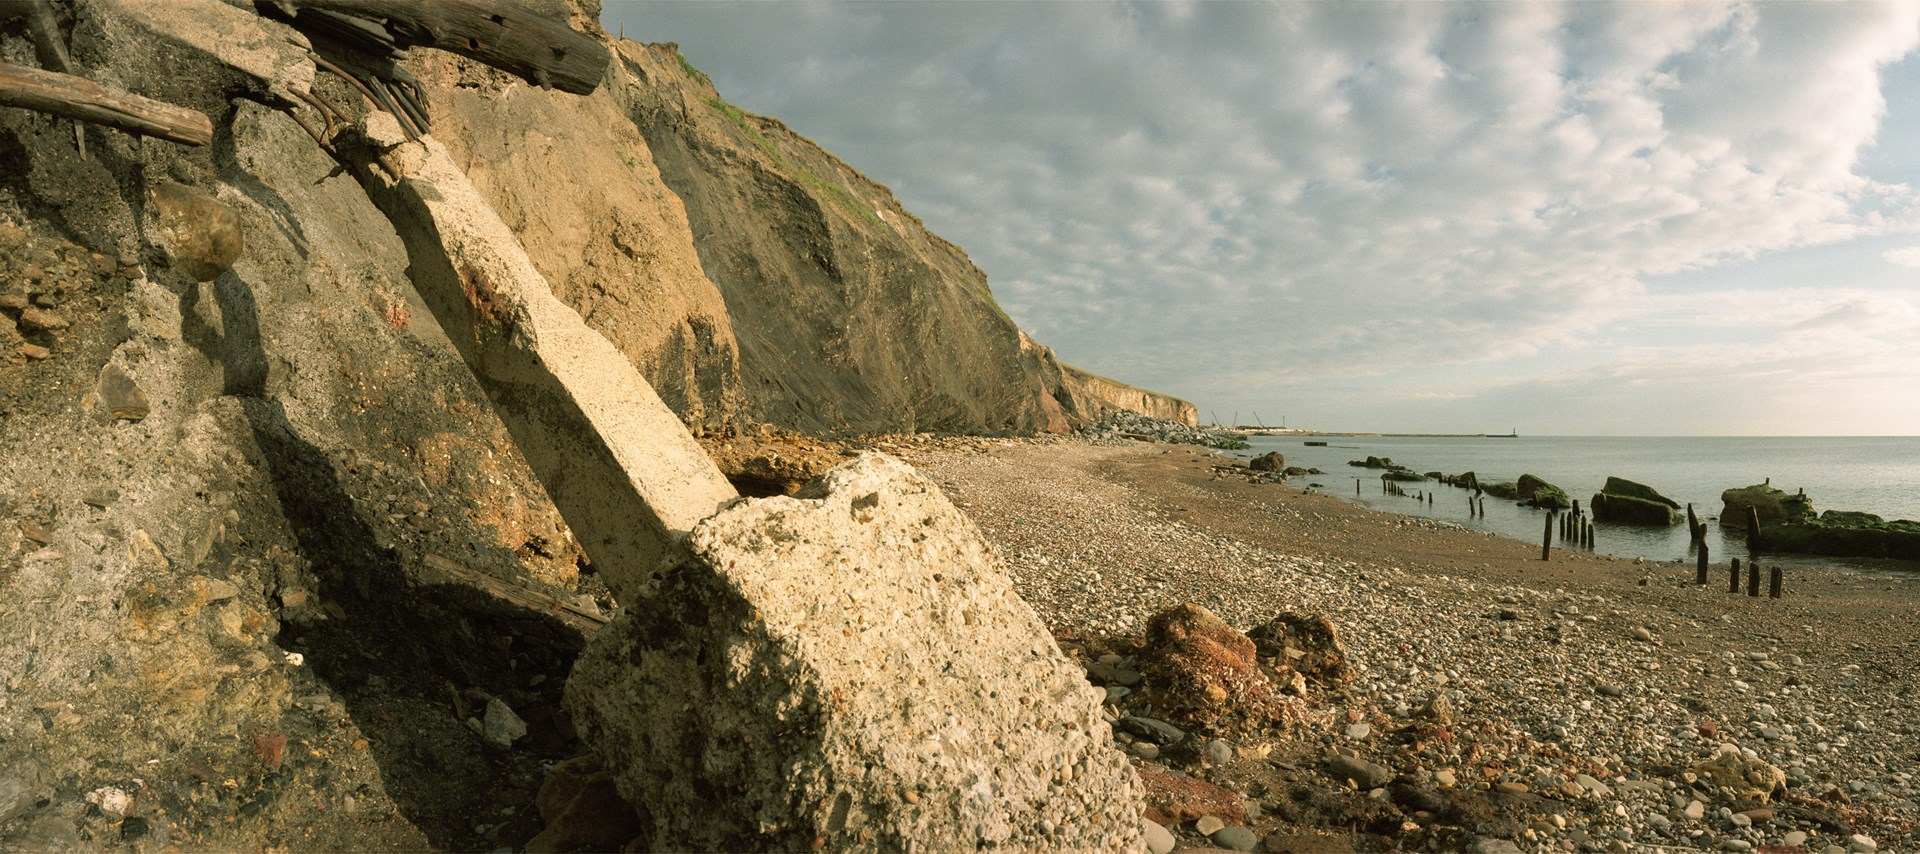 Sirkka-Liisa Konttinen : The Coal Coast, Dawdon, morning 12 June, 2002